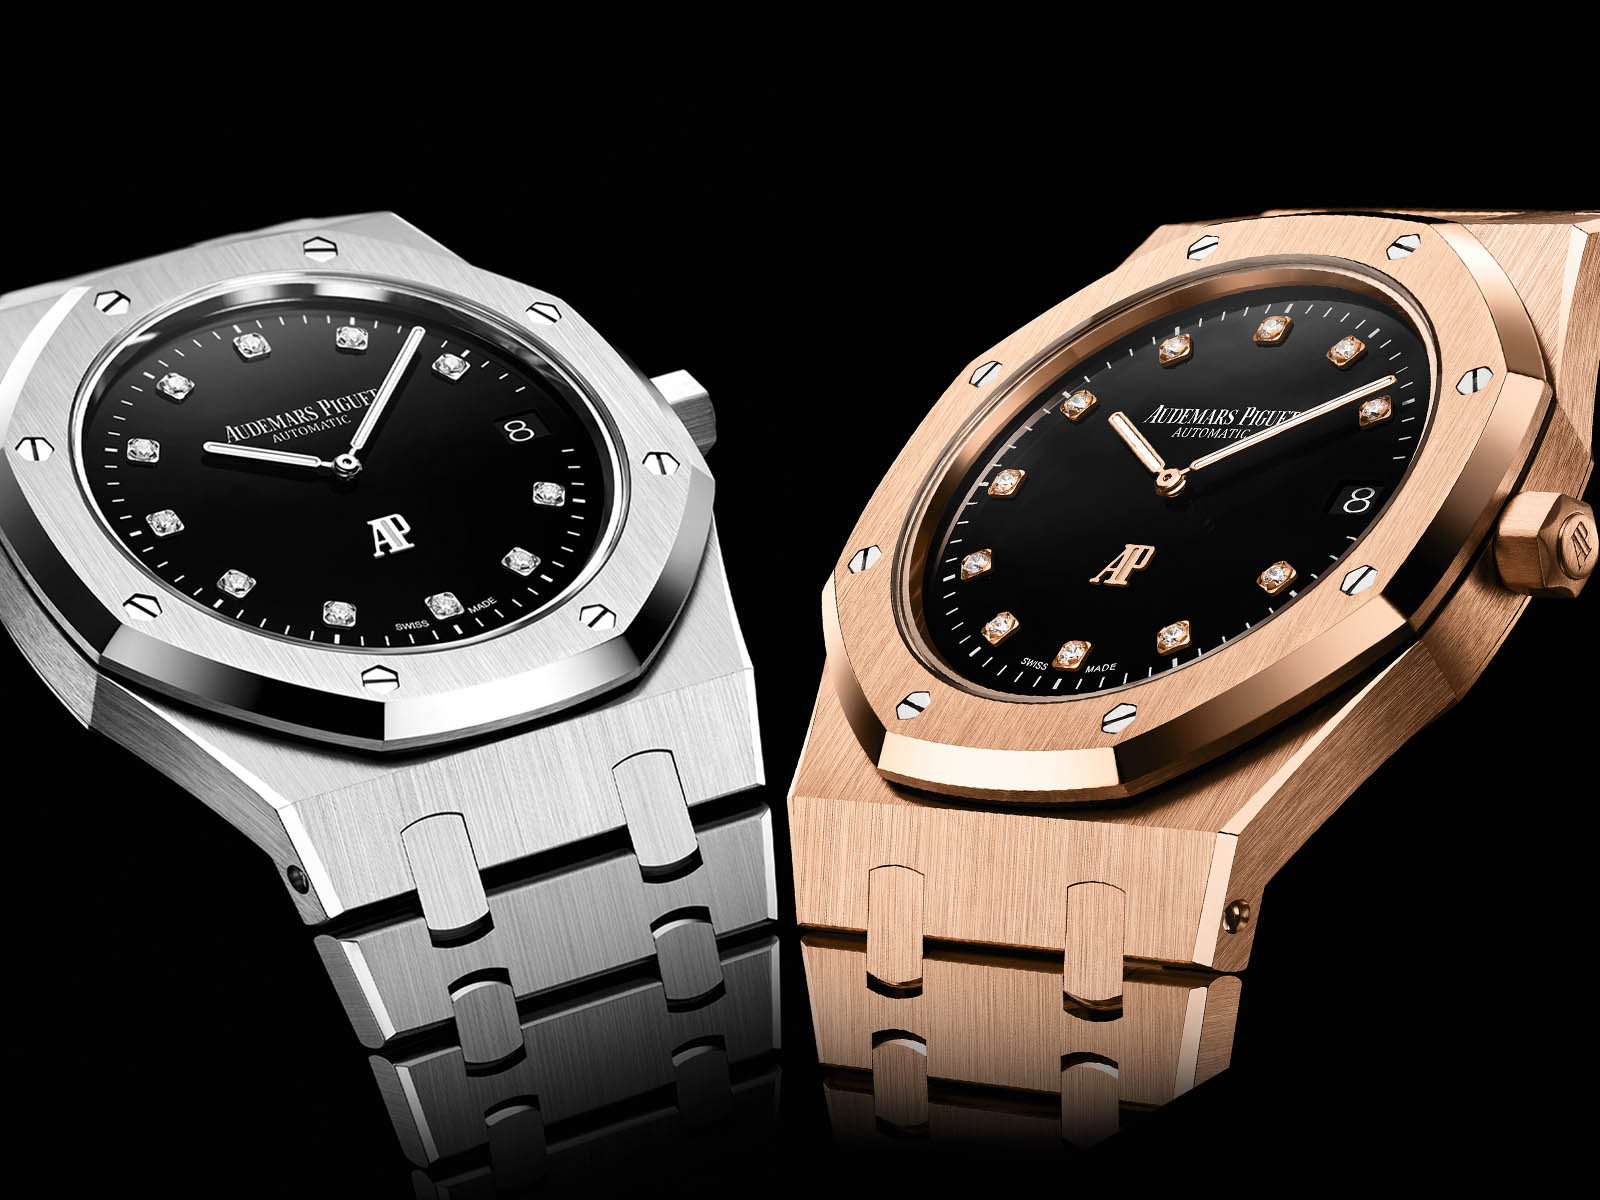 audemars-piguet-royal-oak-jumbo-extra-thin-platinum-pink-gold-1.jpg